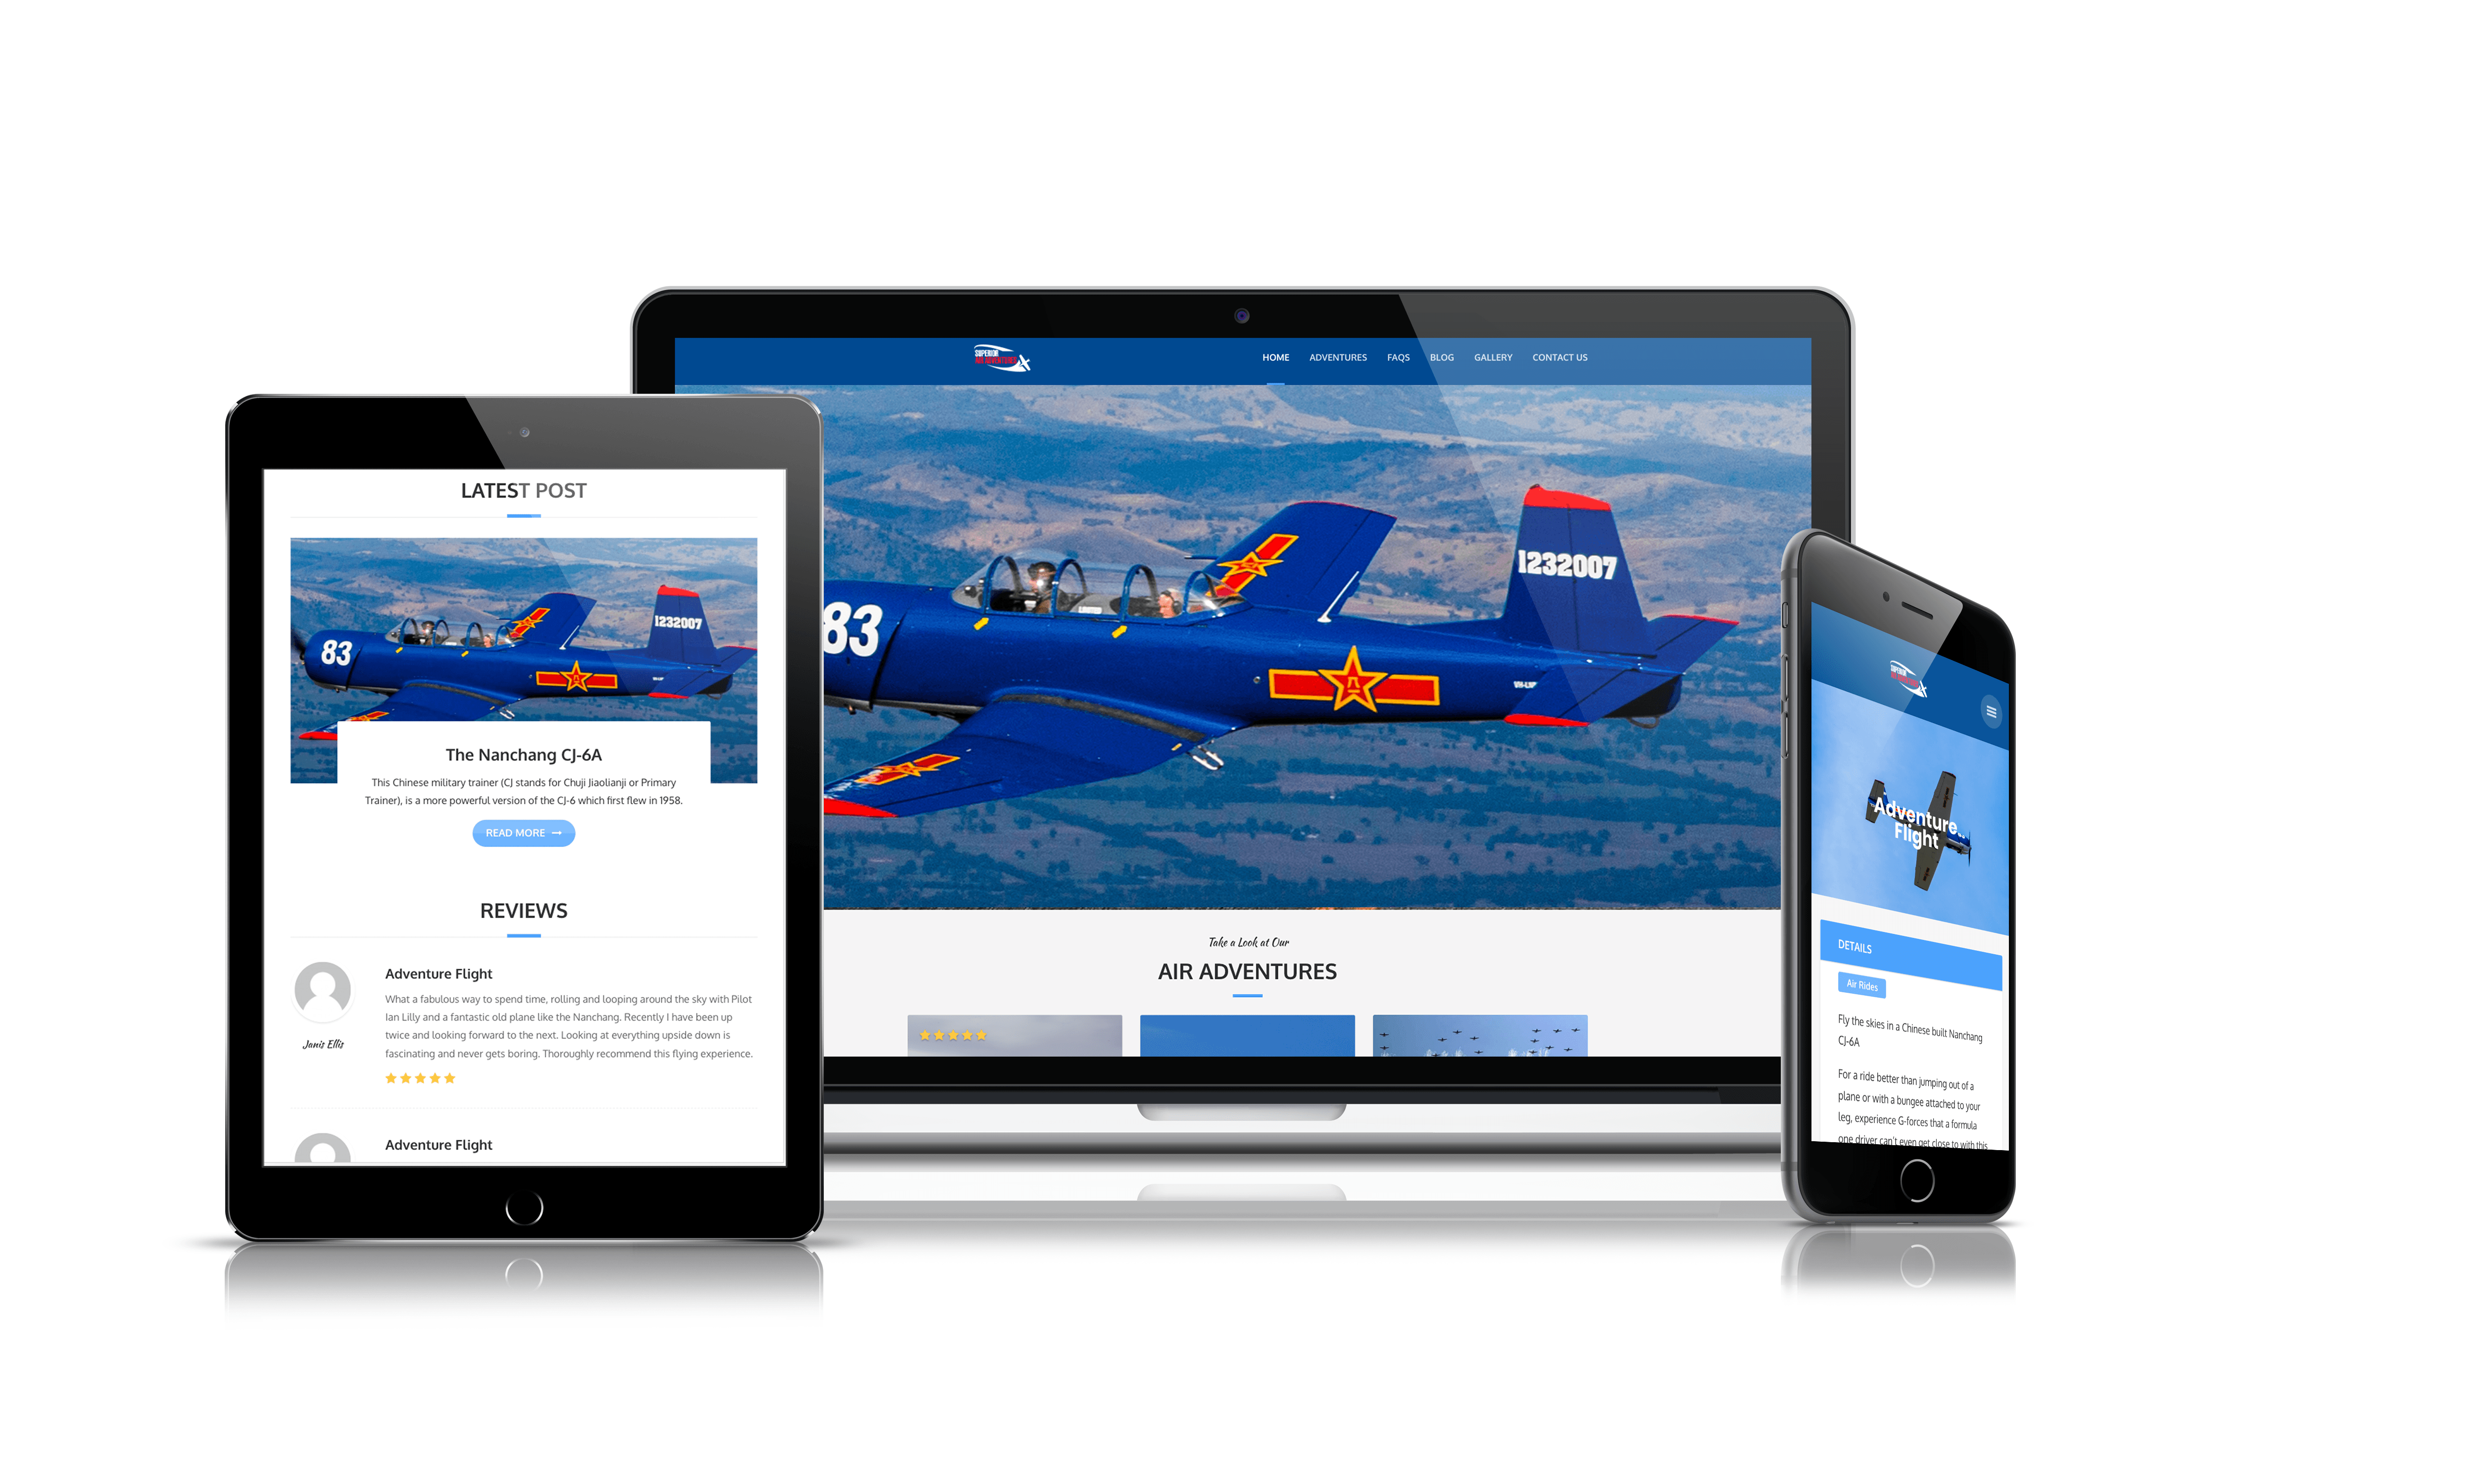 superior air adventures website